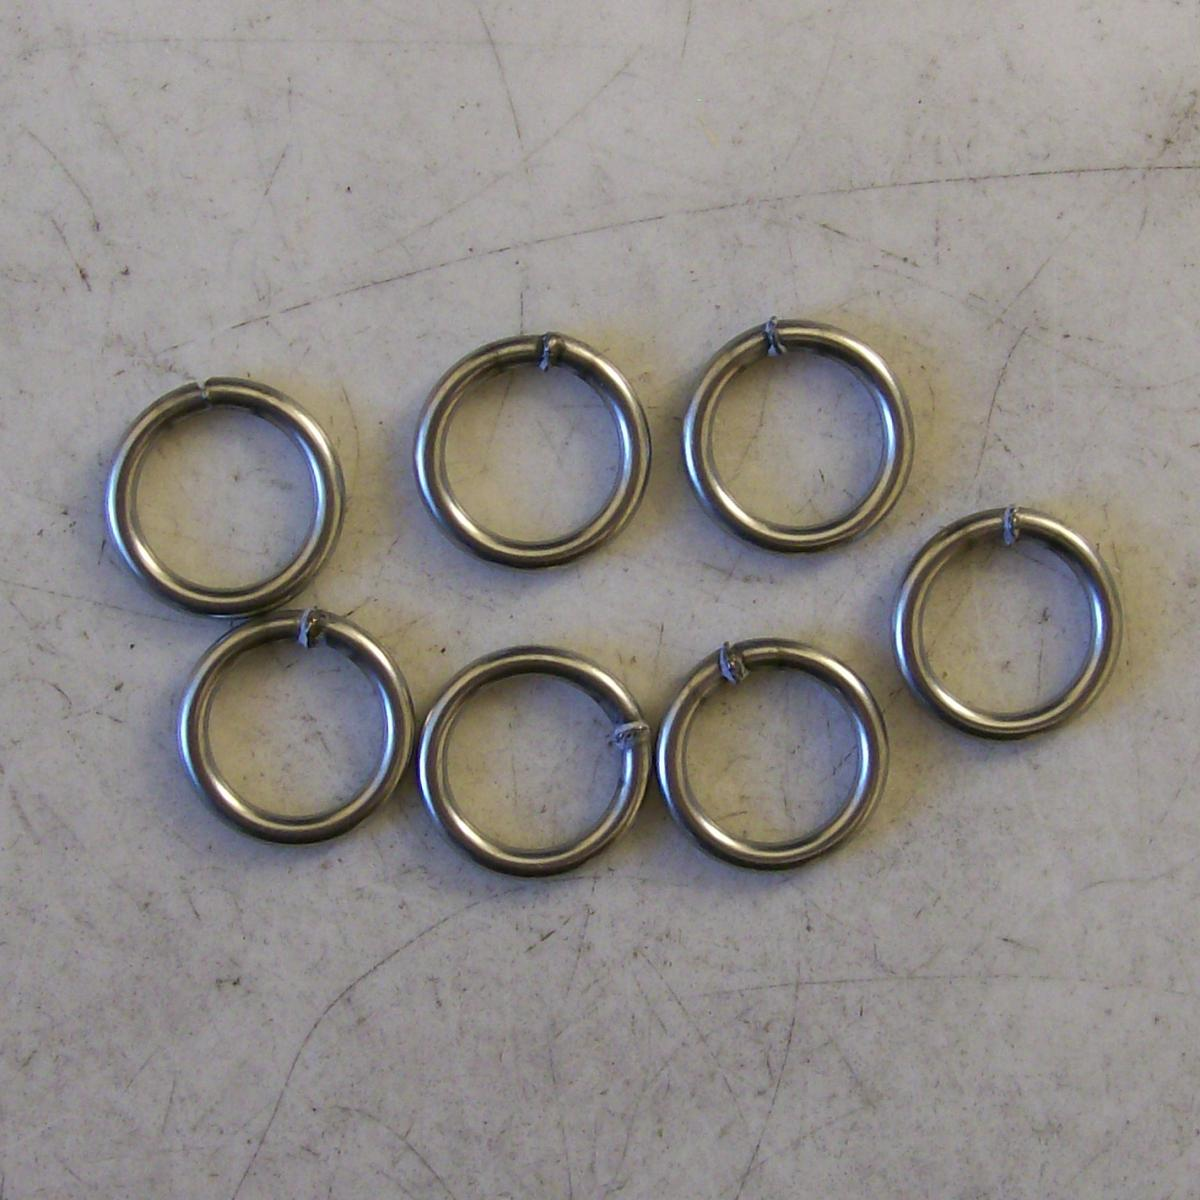 16ga 7.00mm Stainless Rings Welded With The new TRL Resistance Welder.